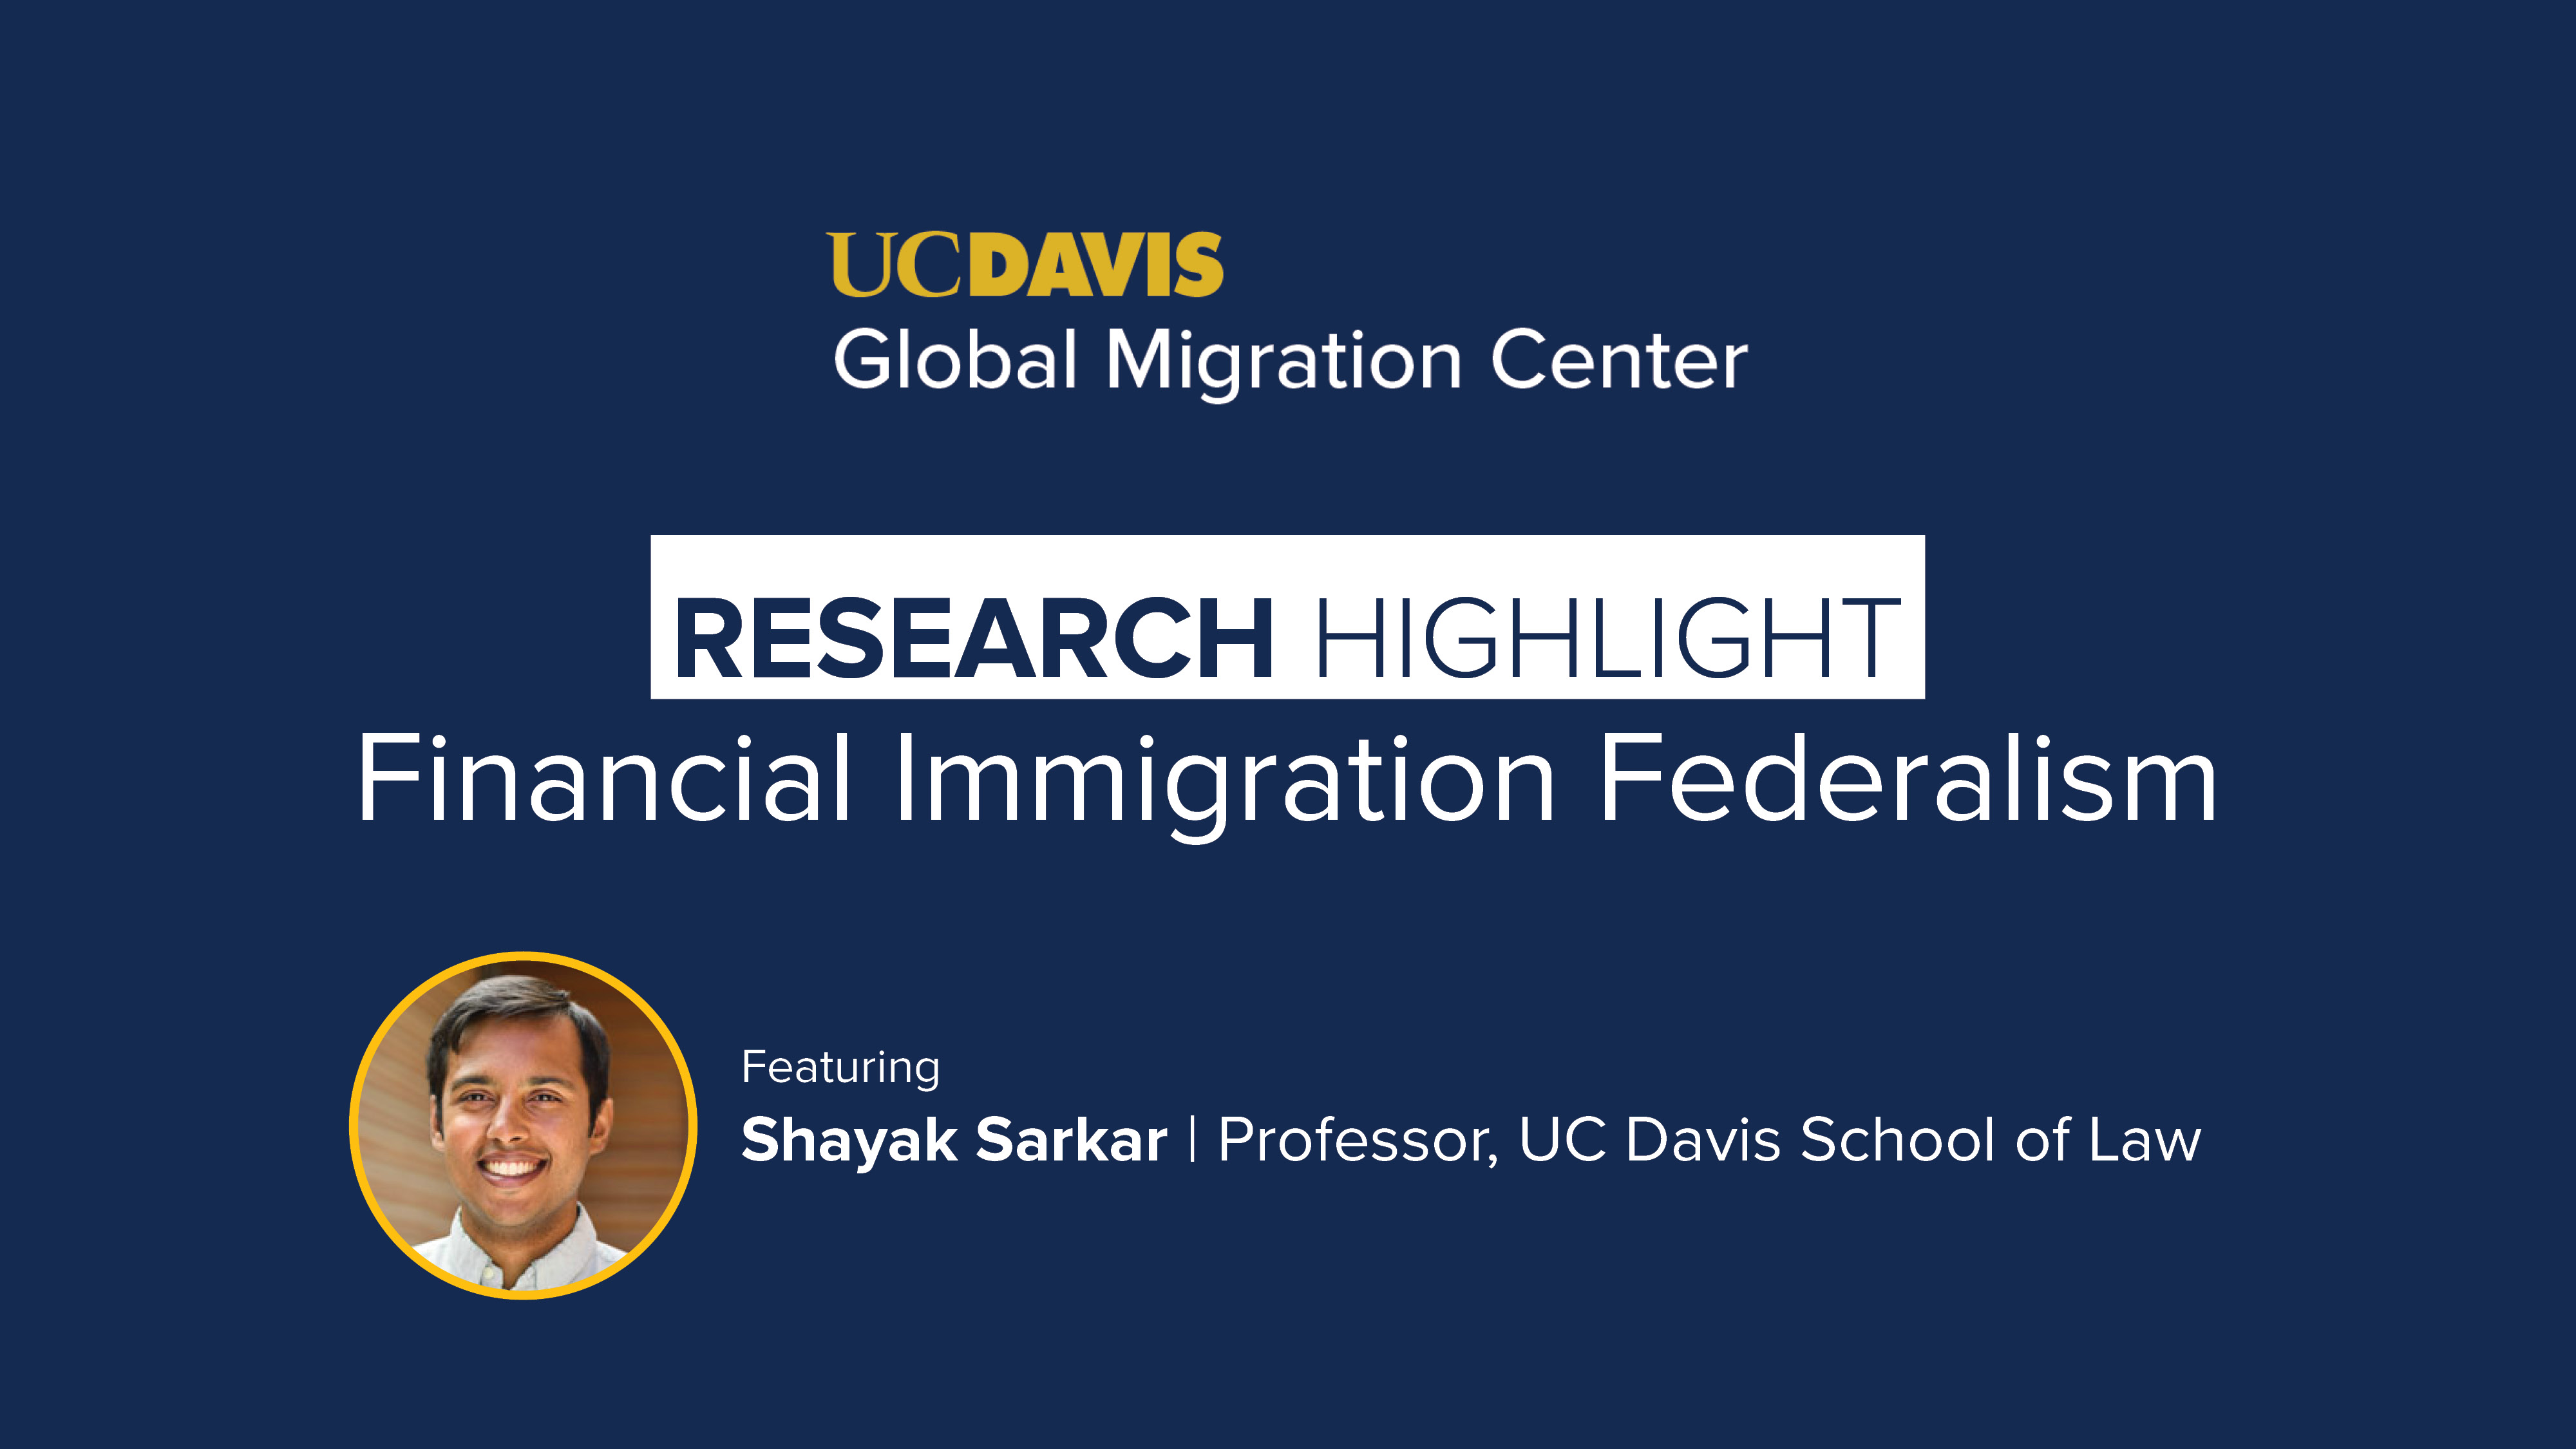 Financial Immigration Federalism